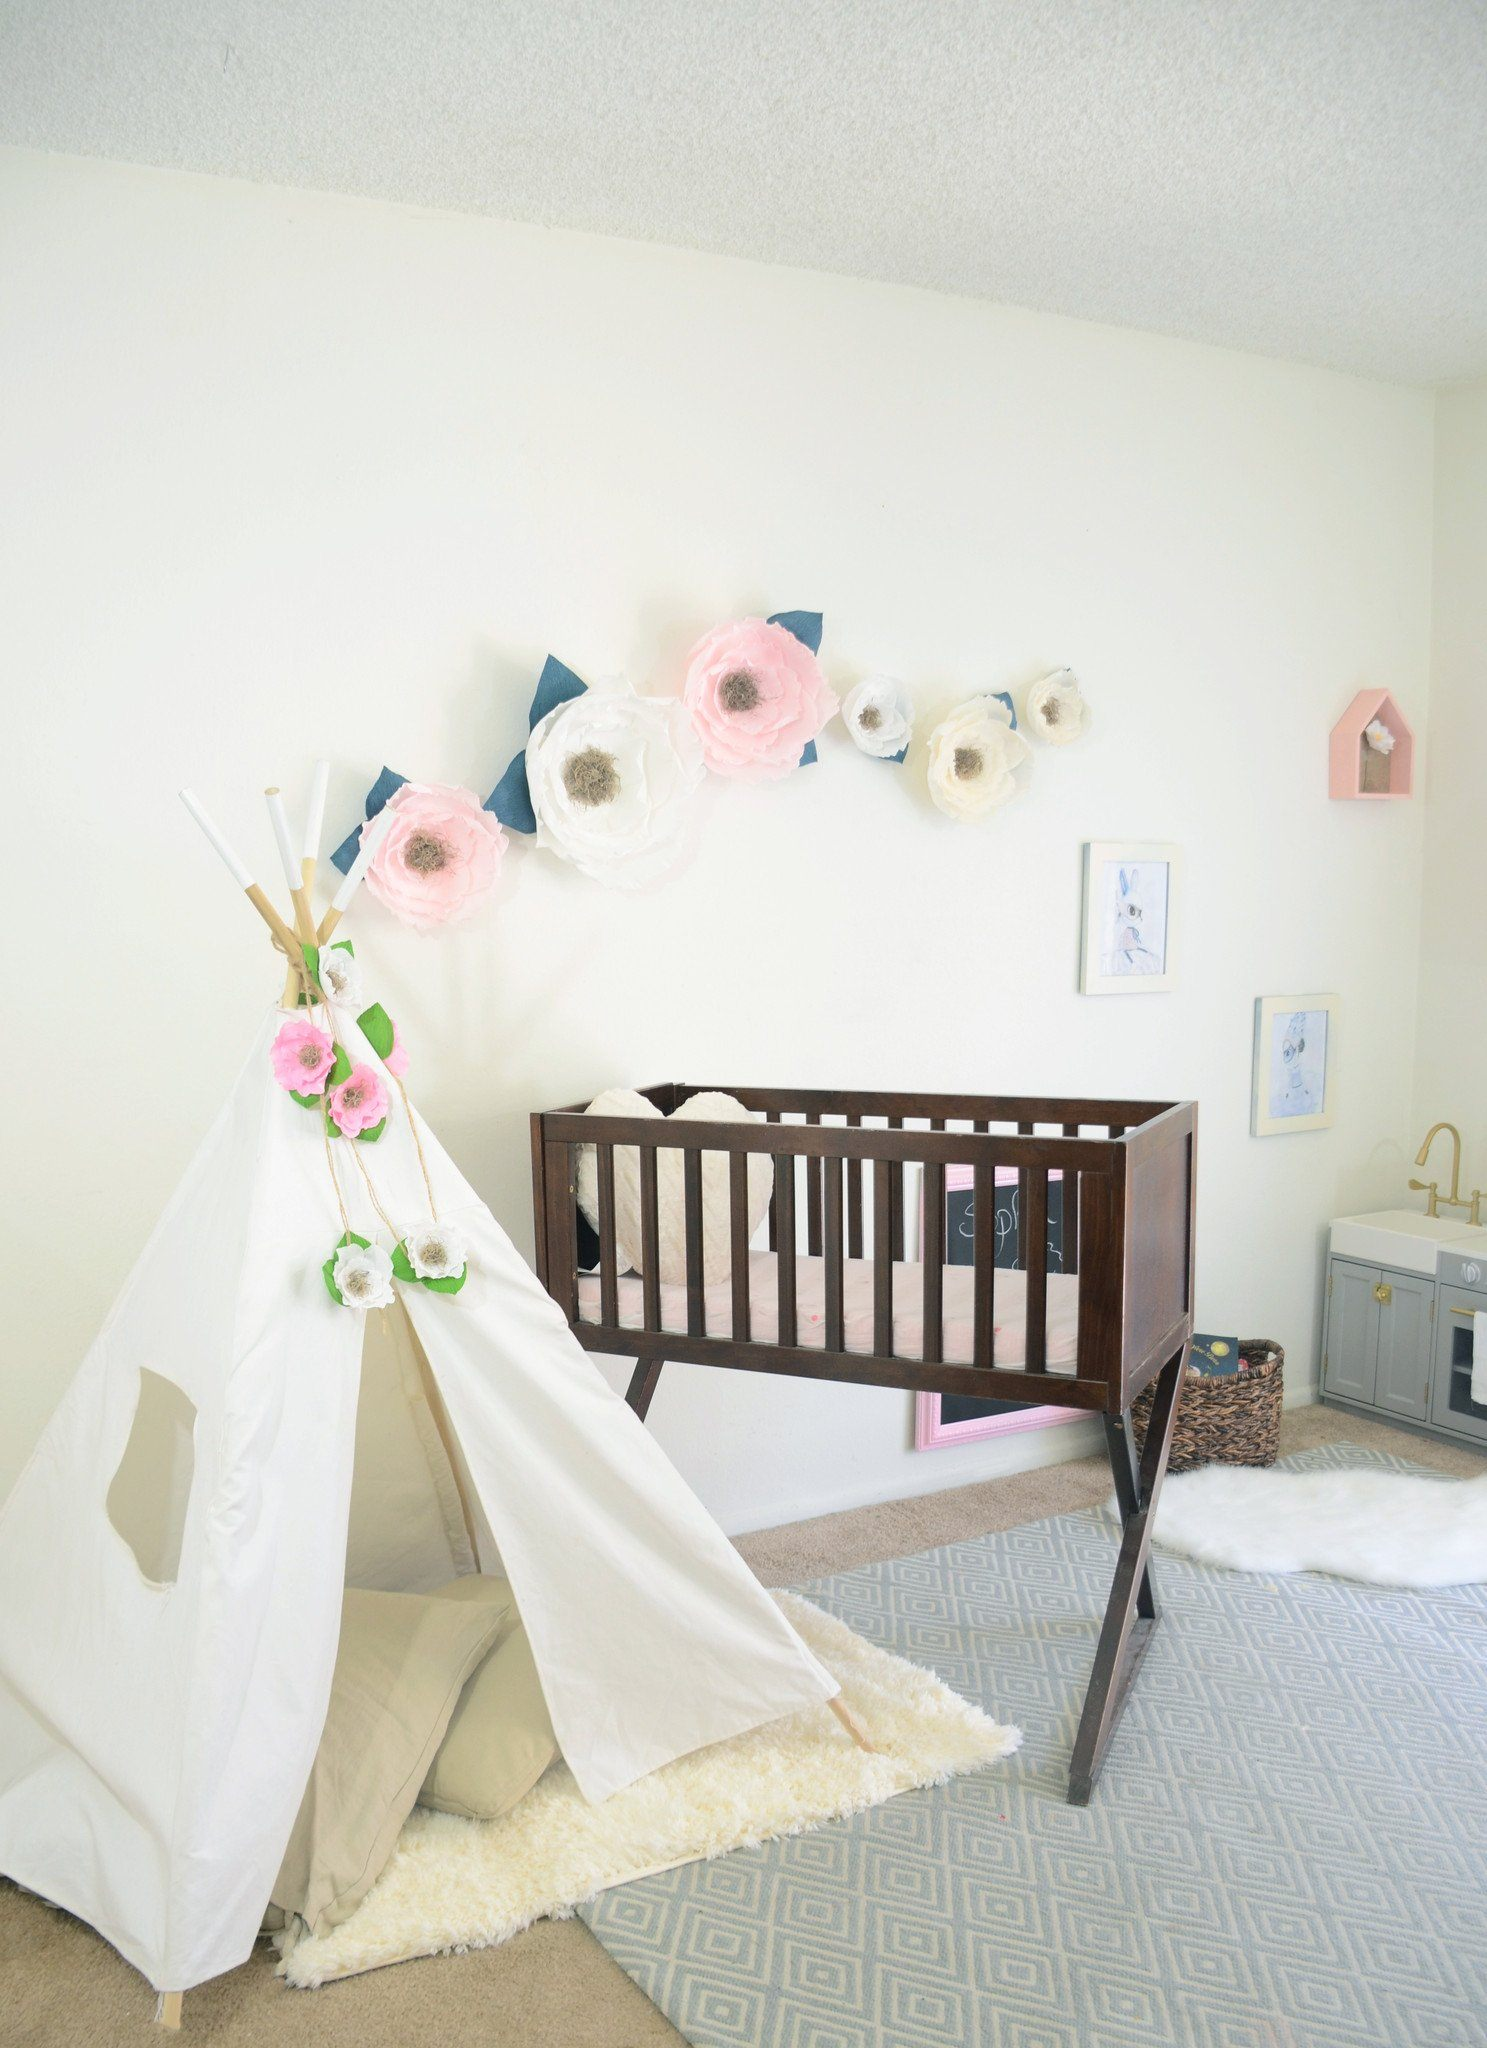 Jute Cord Floral Garland - Project Nursery